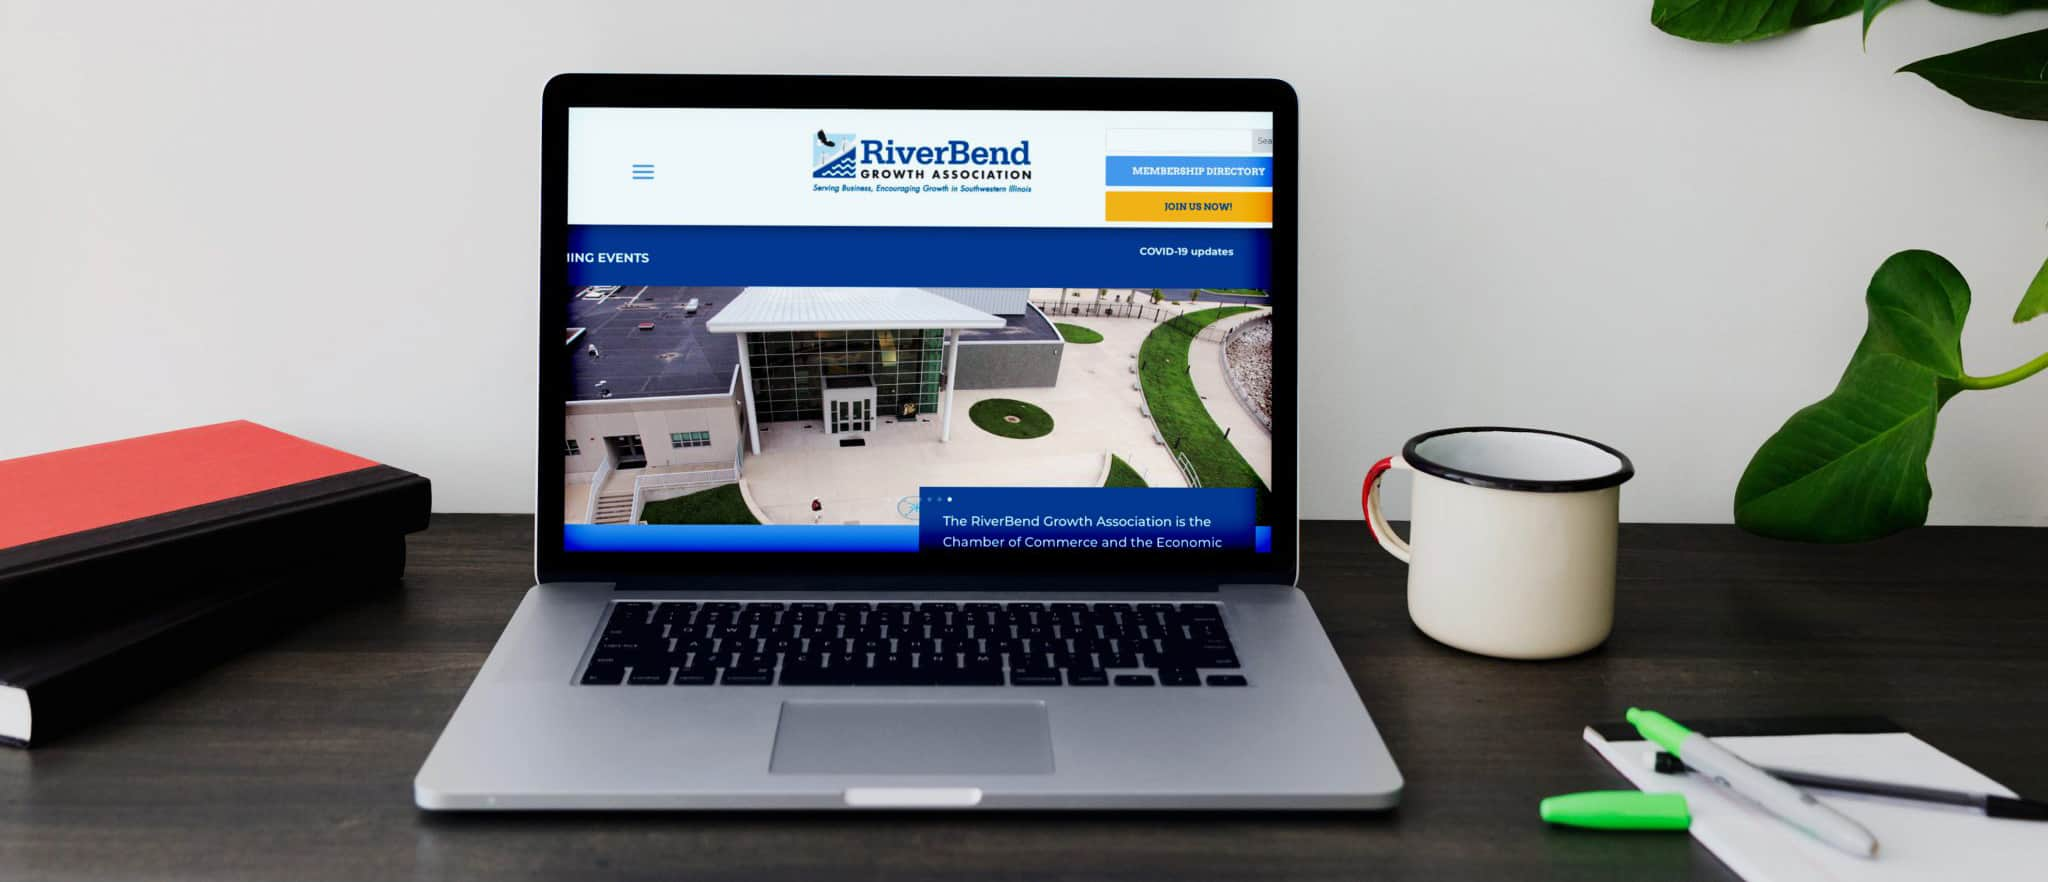 Riverbend Growth Association website pulled up on a laptop